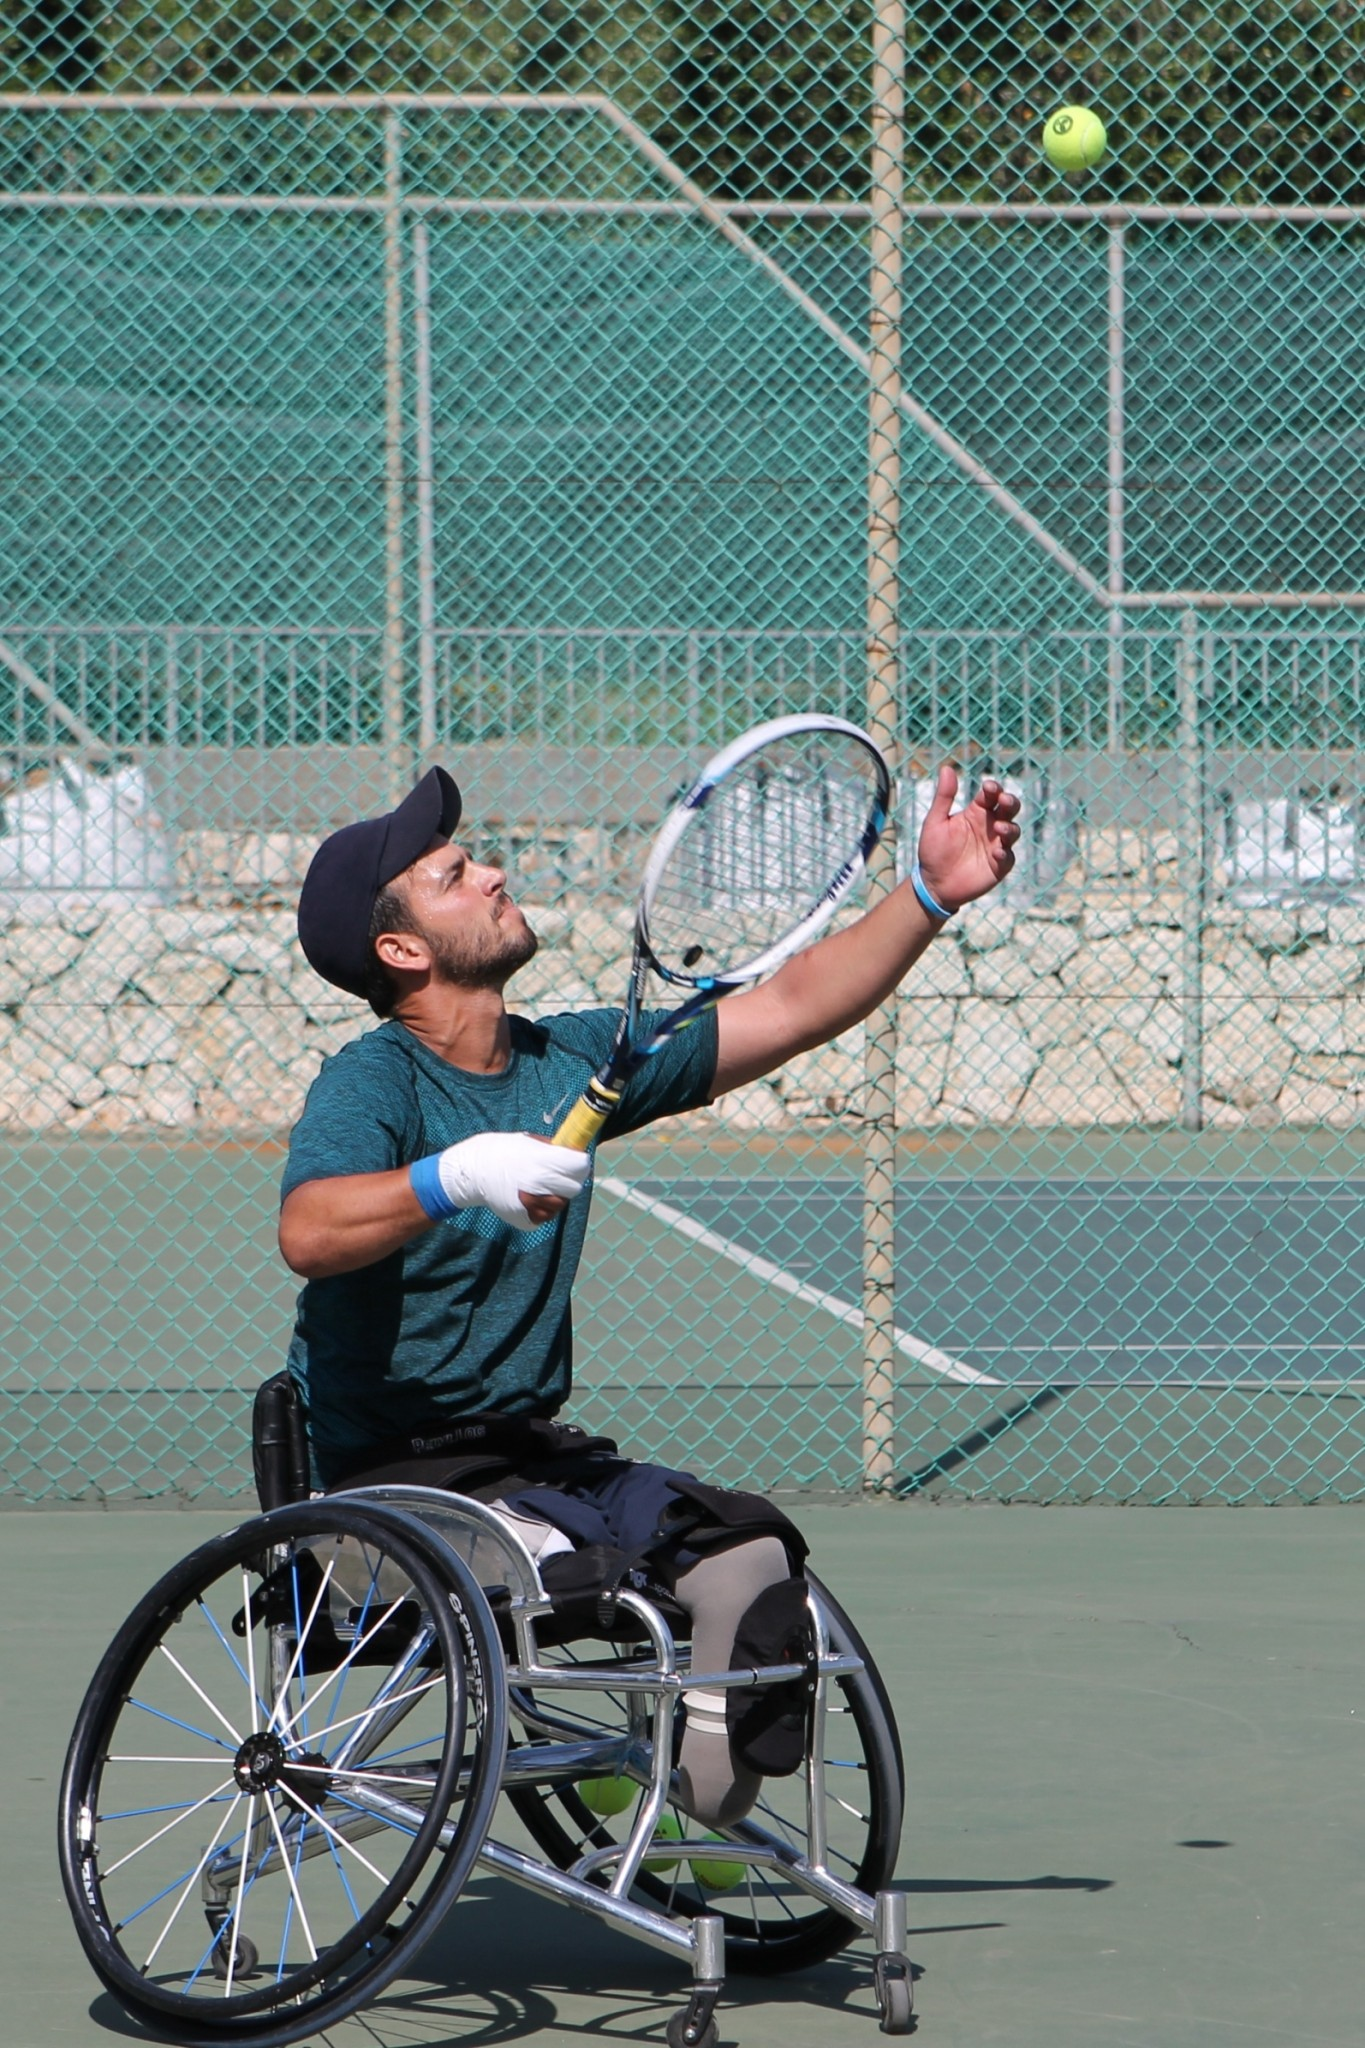 Itay Erenlib, 31, will play wheelchair tennis doubles with Paralympics veteran Shraga Weinberg, 50. Photo by Keren Isacson